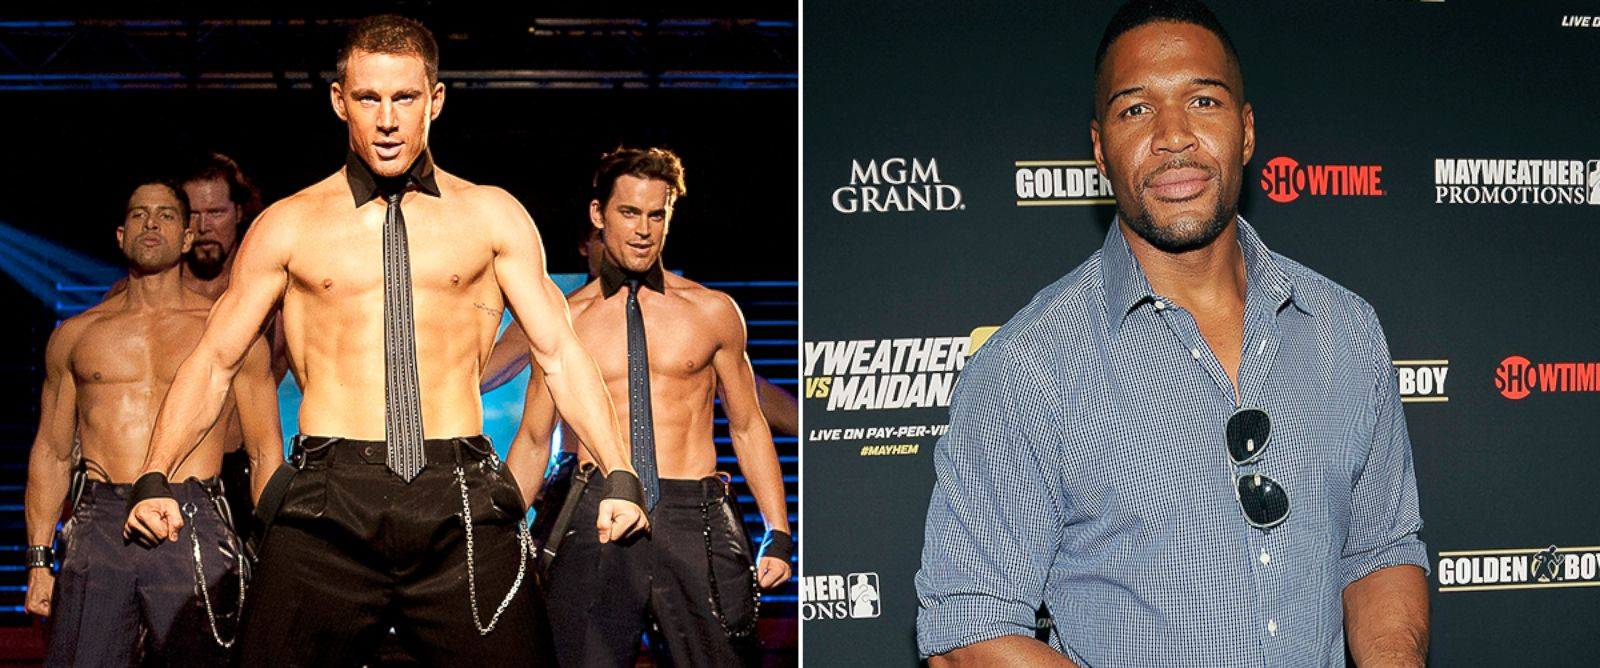 PHOTO: Michael Strahan in Magic Mike 2